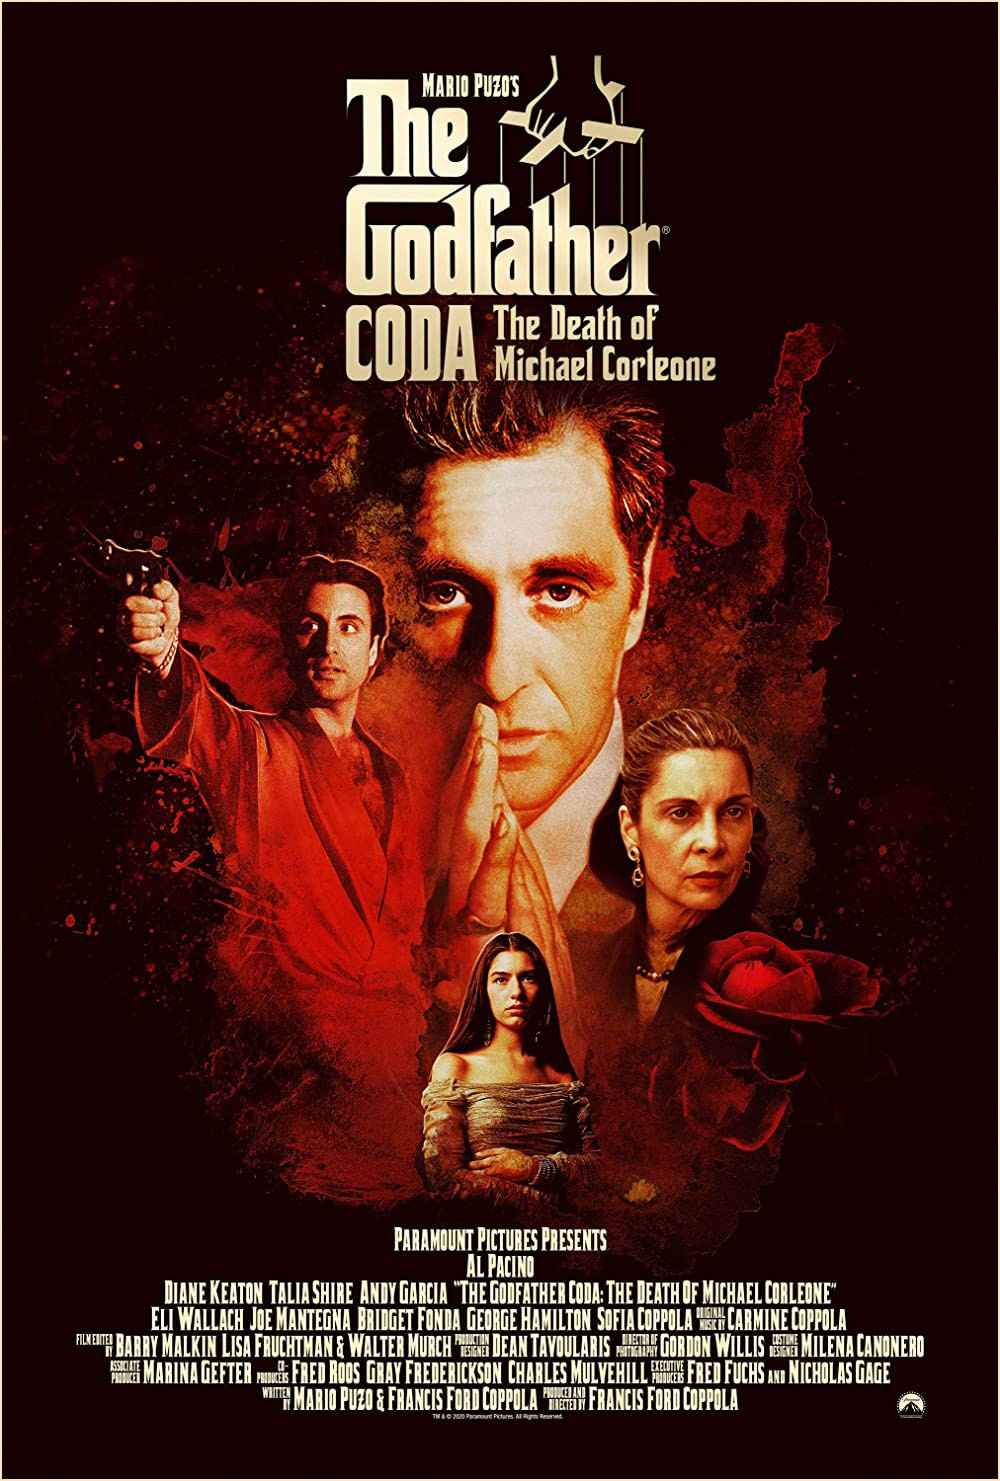 THE GODFATHER CODA : THE DEATH OF MICHAEL CORLEONE